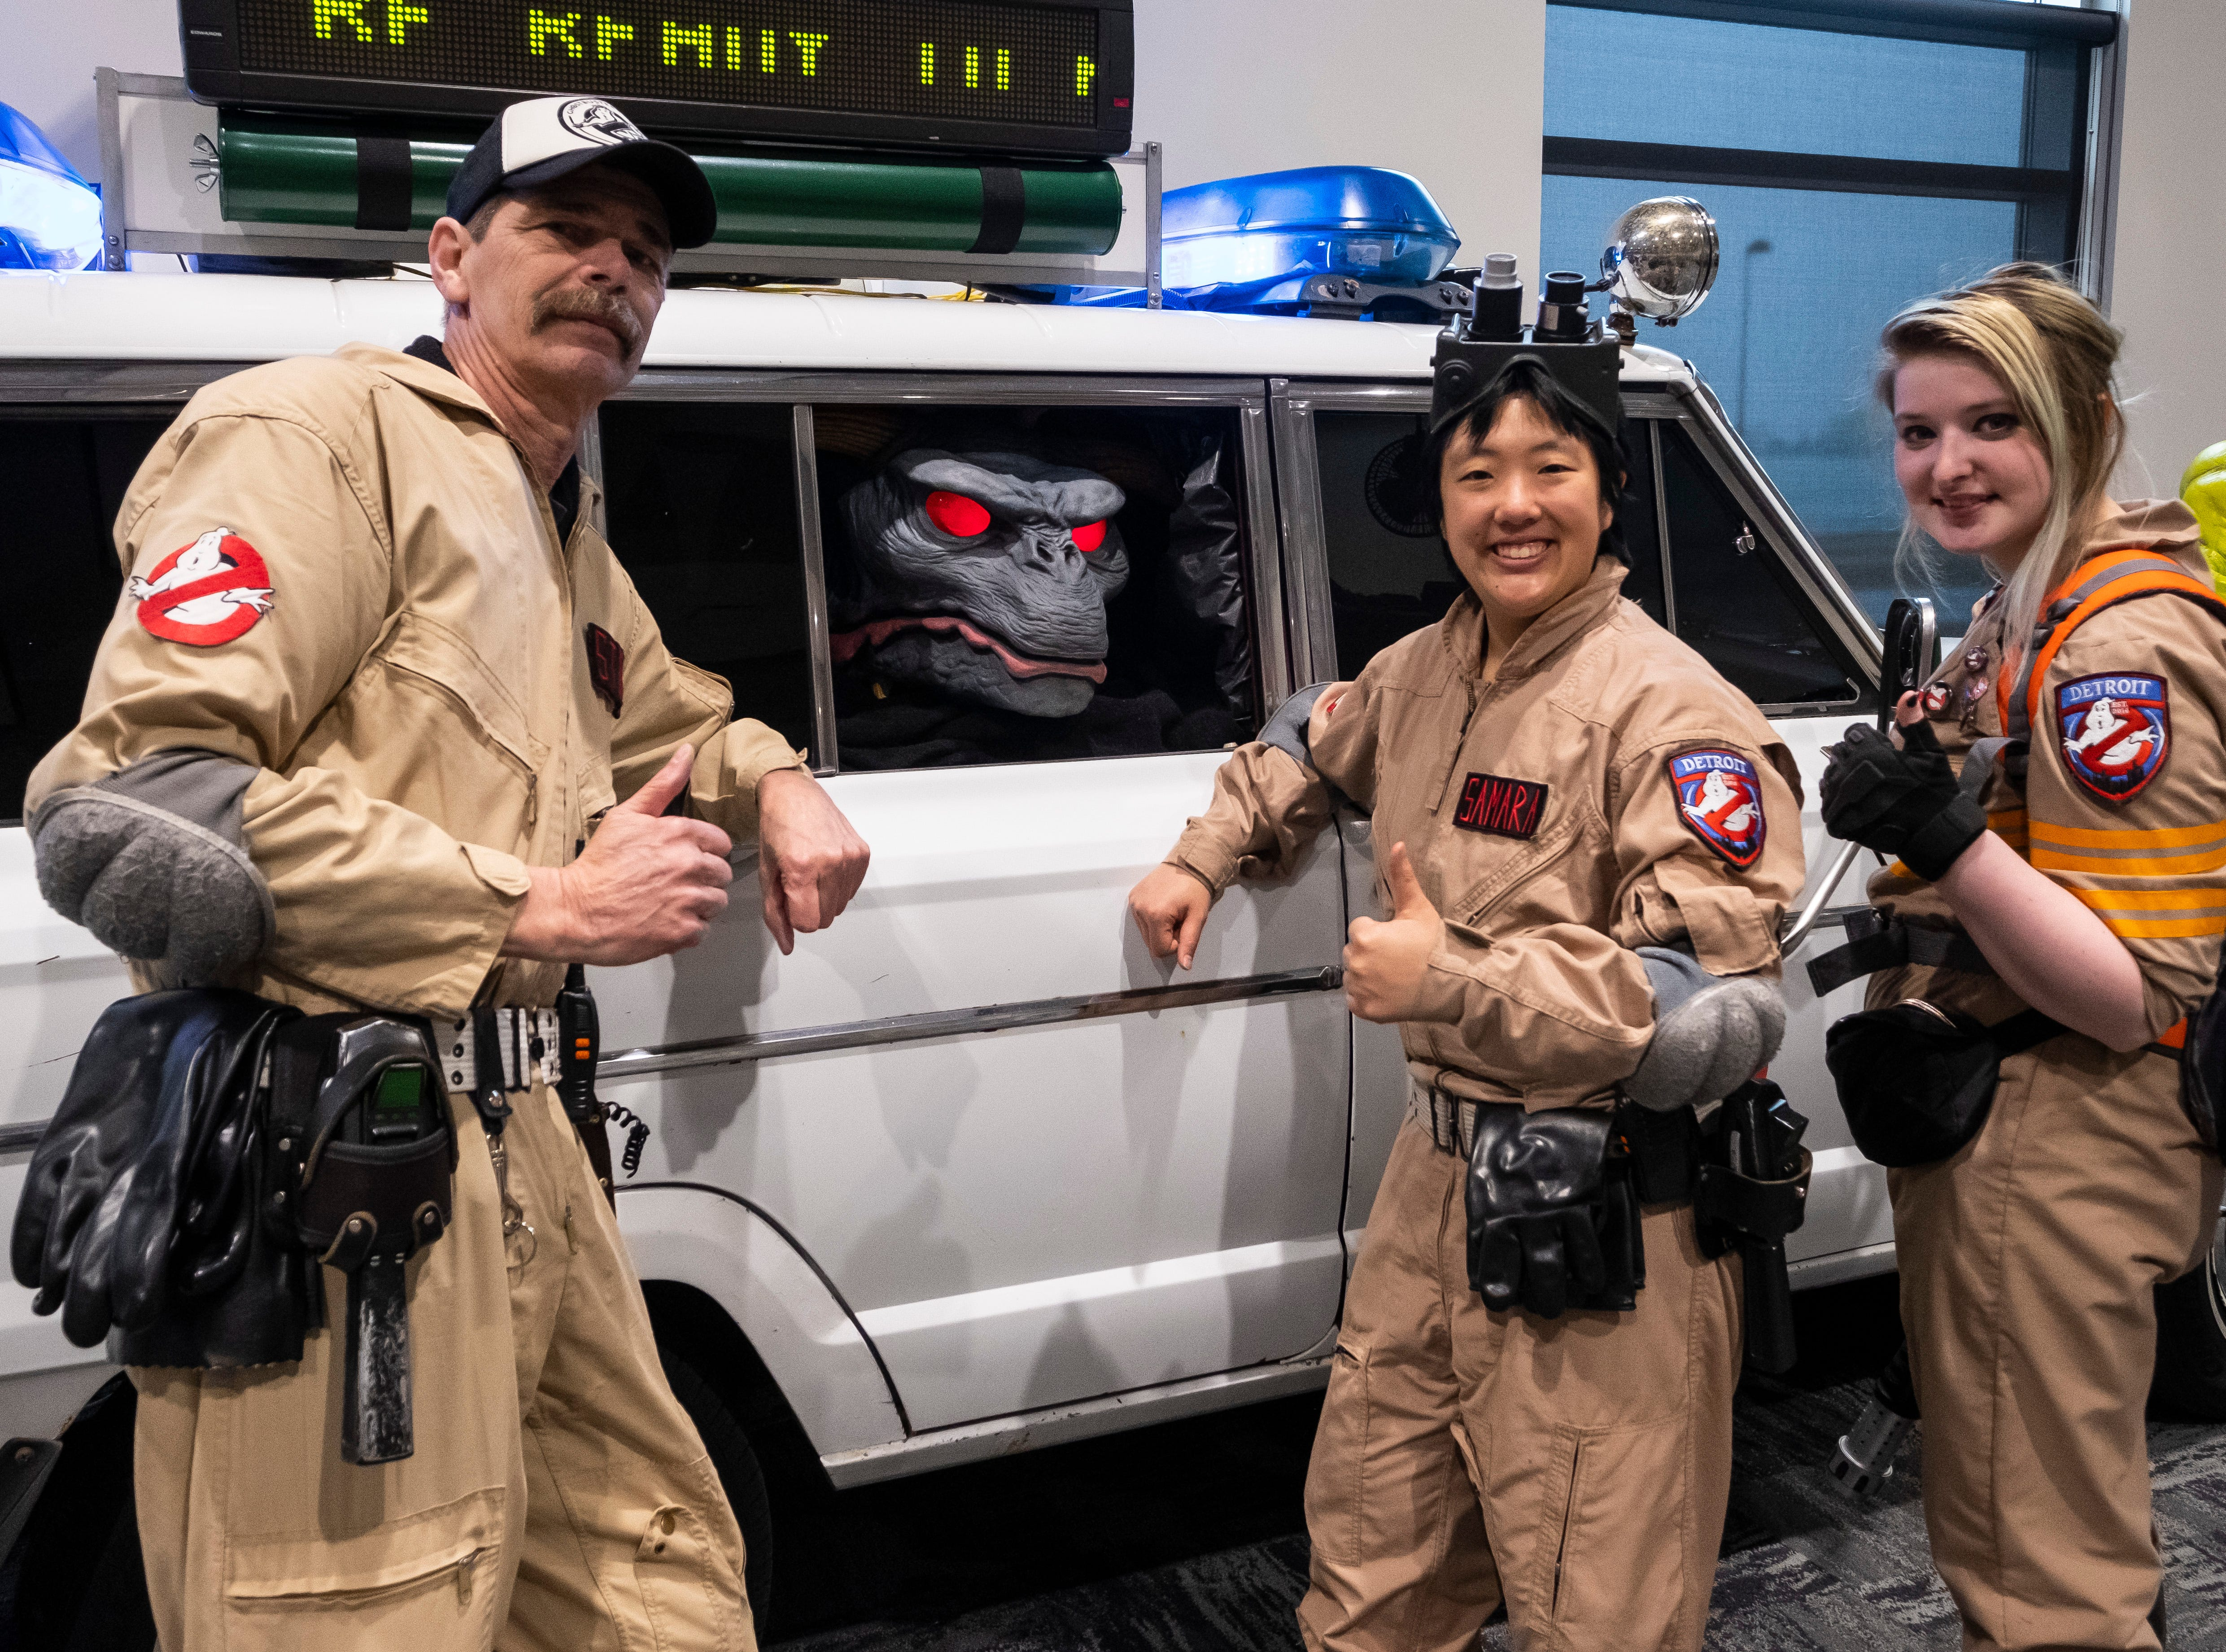 Detroit Ghostbusters Stan Lindow, left, Samara Shaw, center and Lauren Marquardt pose next to their vehicle Saturday, March 30, 2019 during Blue Water International Comic-Con.